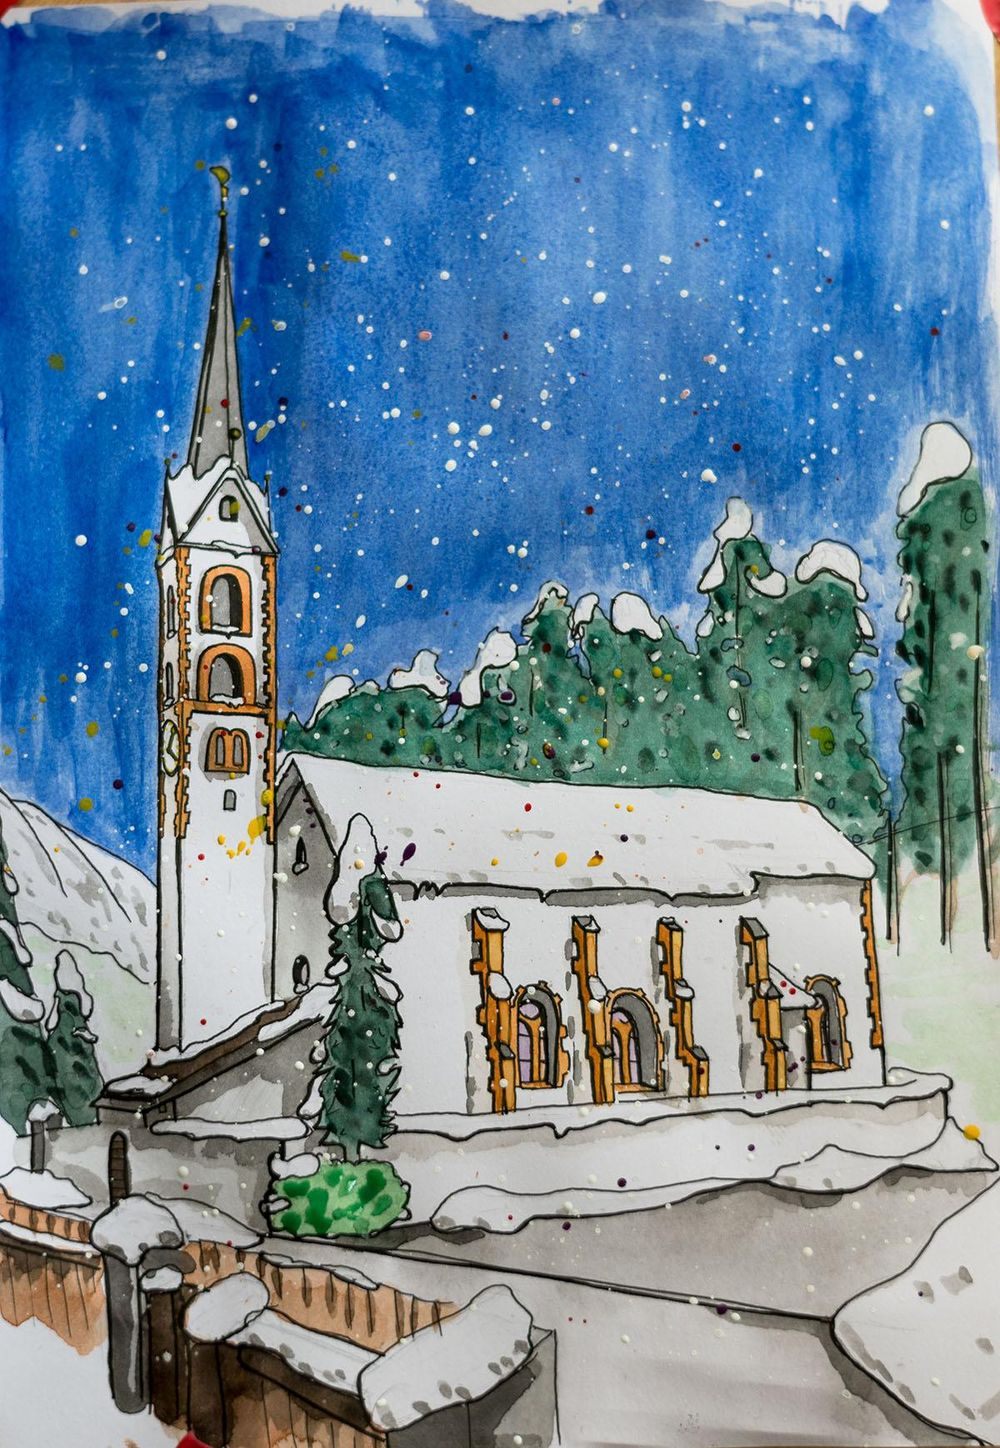 Church in La Punt, Swiss and my grandparents house in Münster, Germany - image 1 - student project